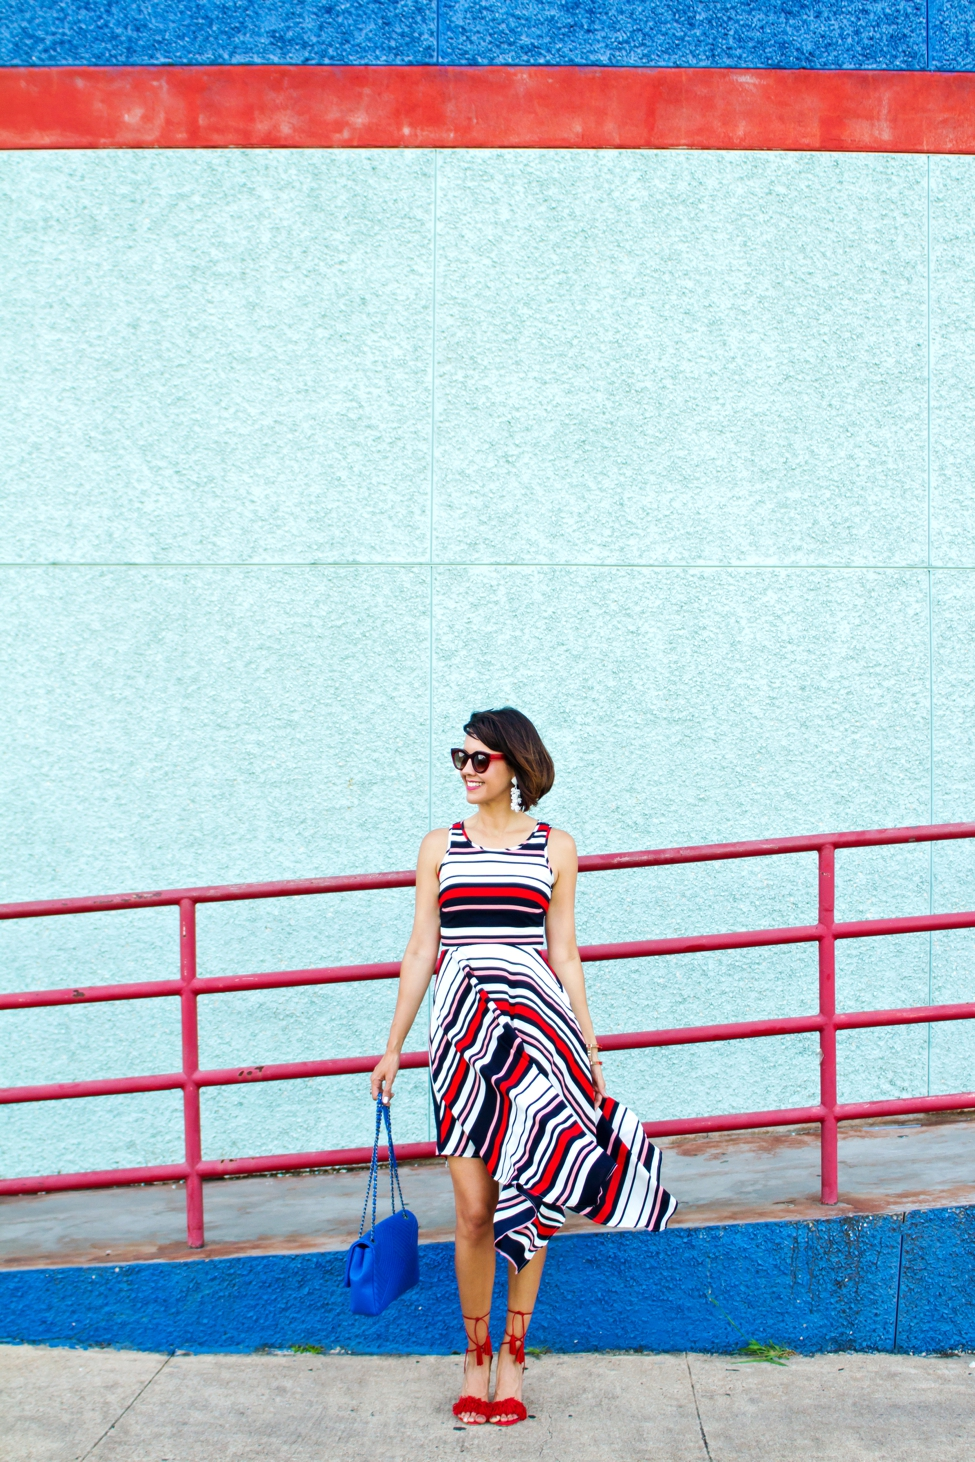 Wear Where Well ModCloth Workwear Red White Blue dress_0015